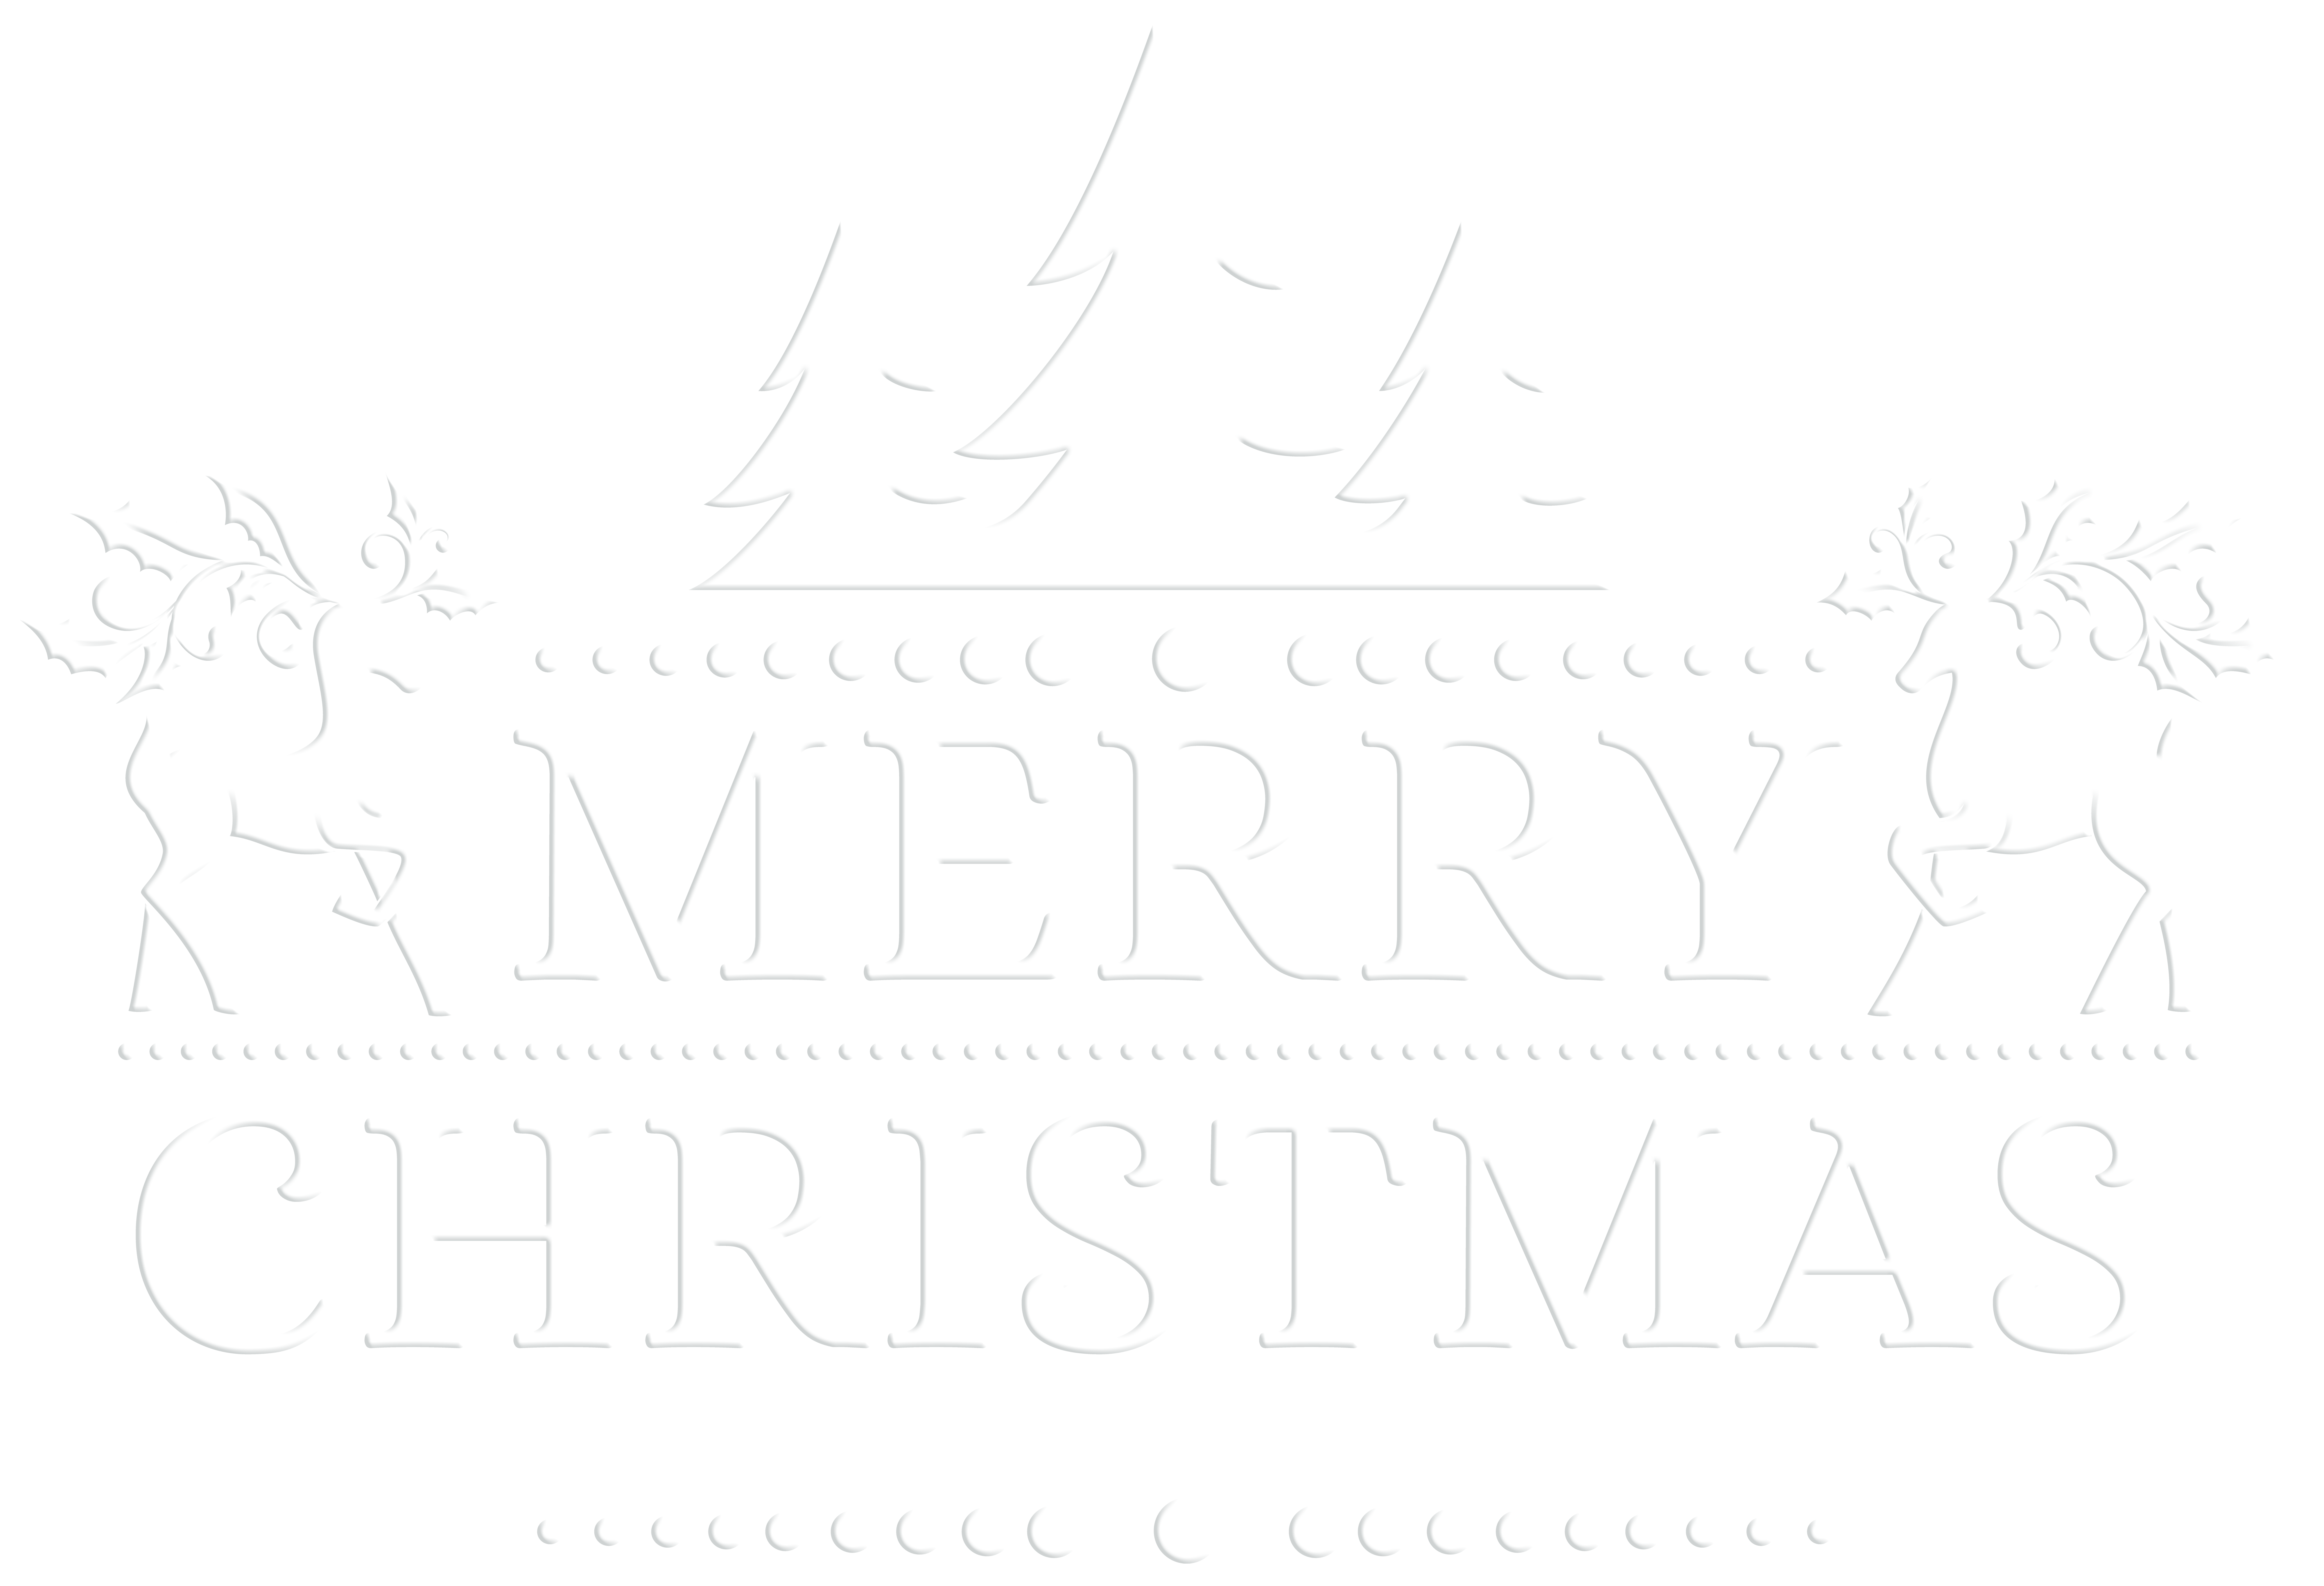 Merry christmas clipart black and white clip art library download Merry Christmas White Transparent PNG Clip Art | Gallery ... clip art library download